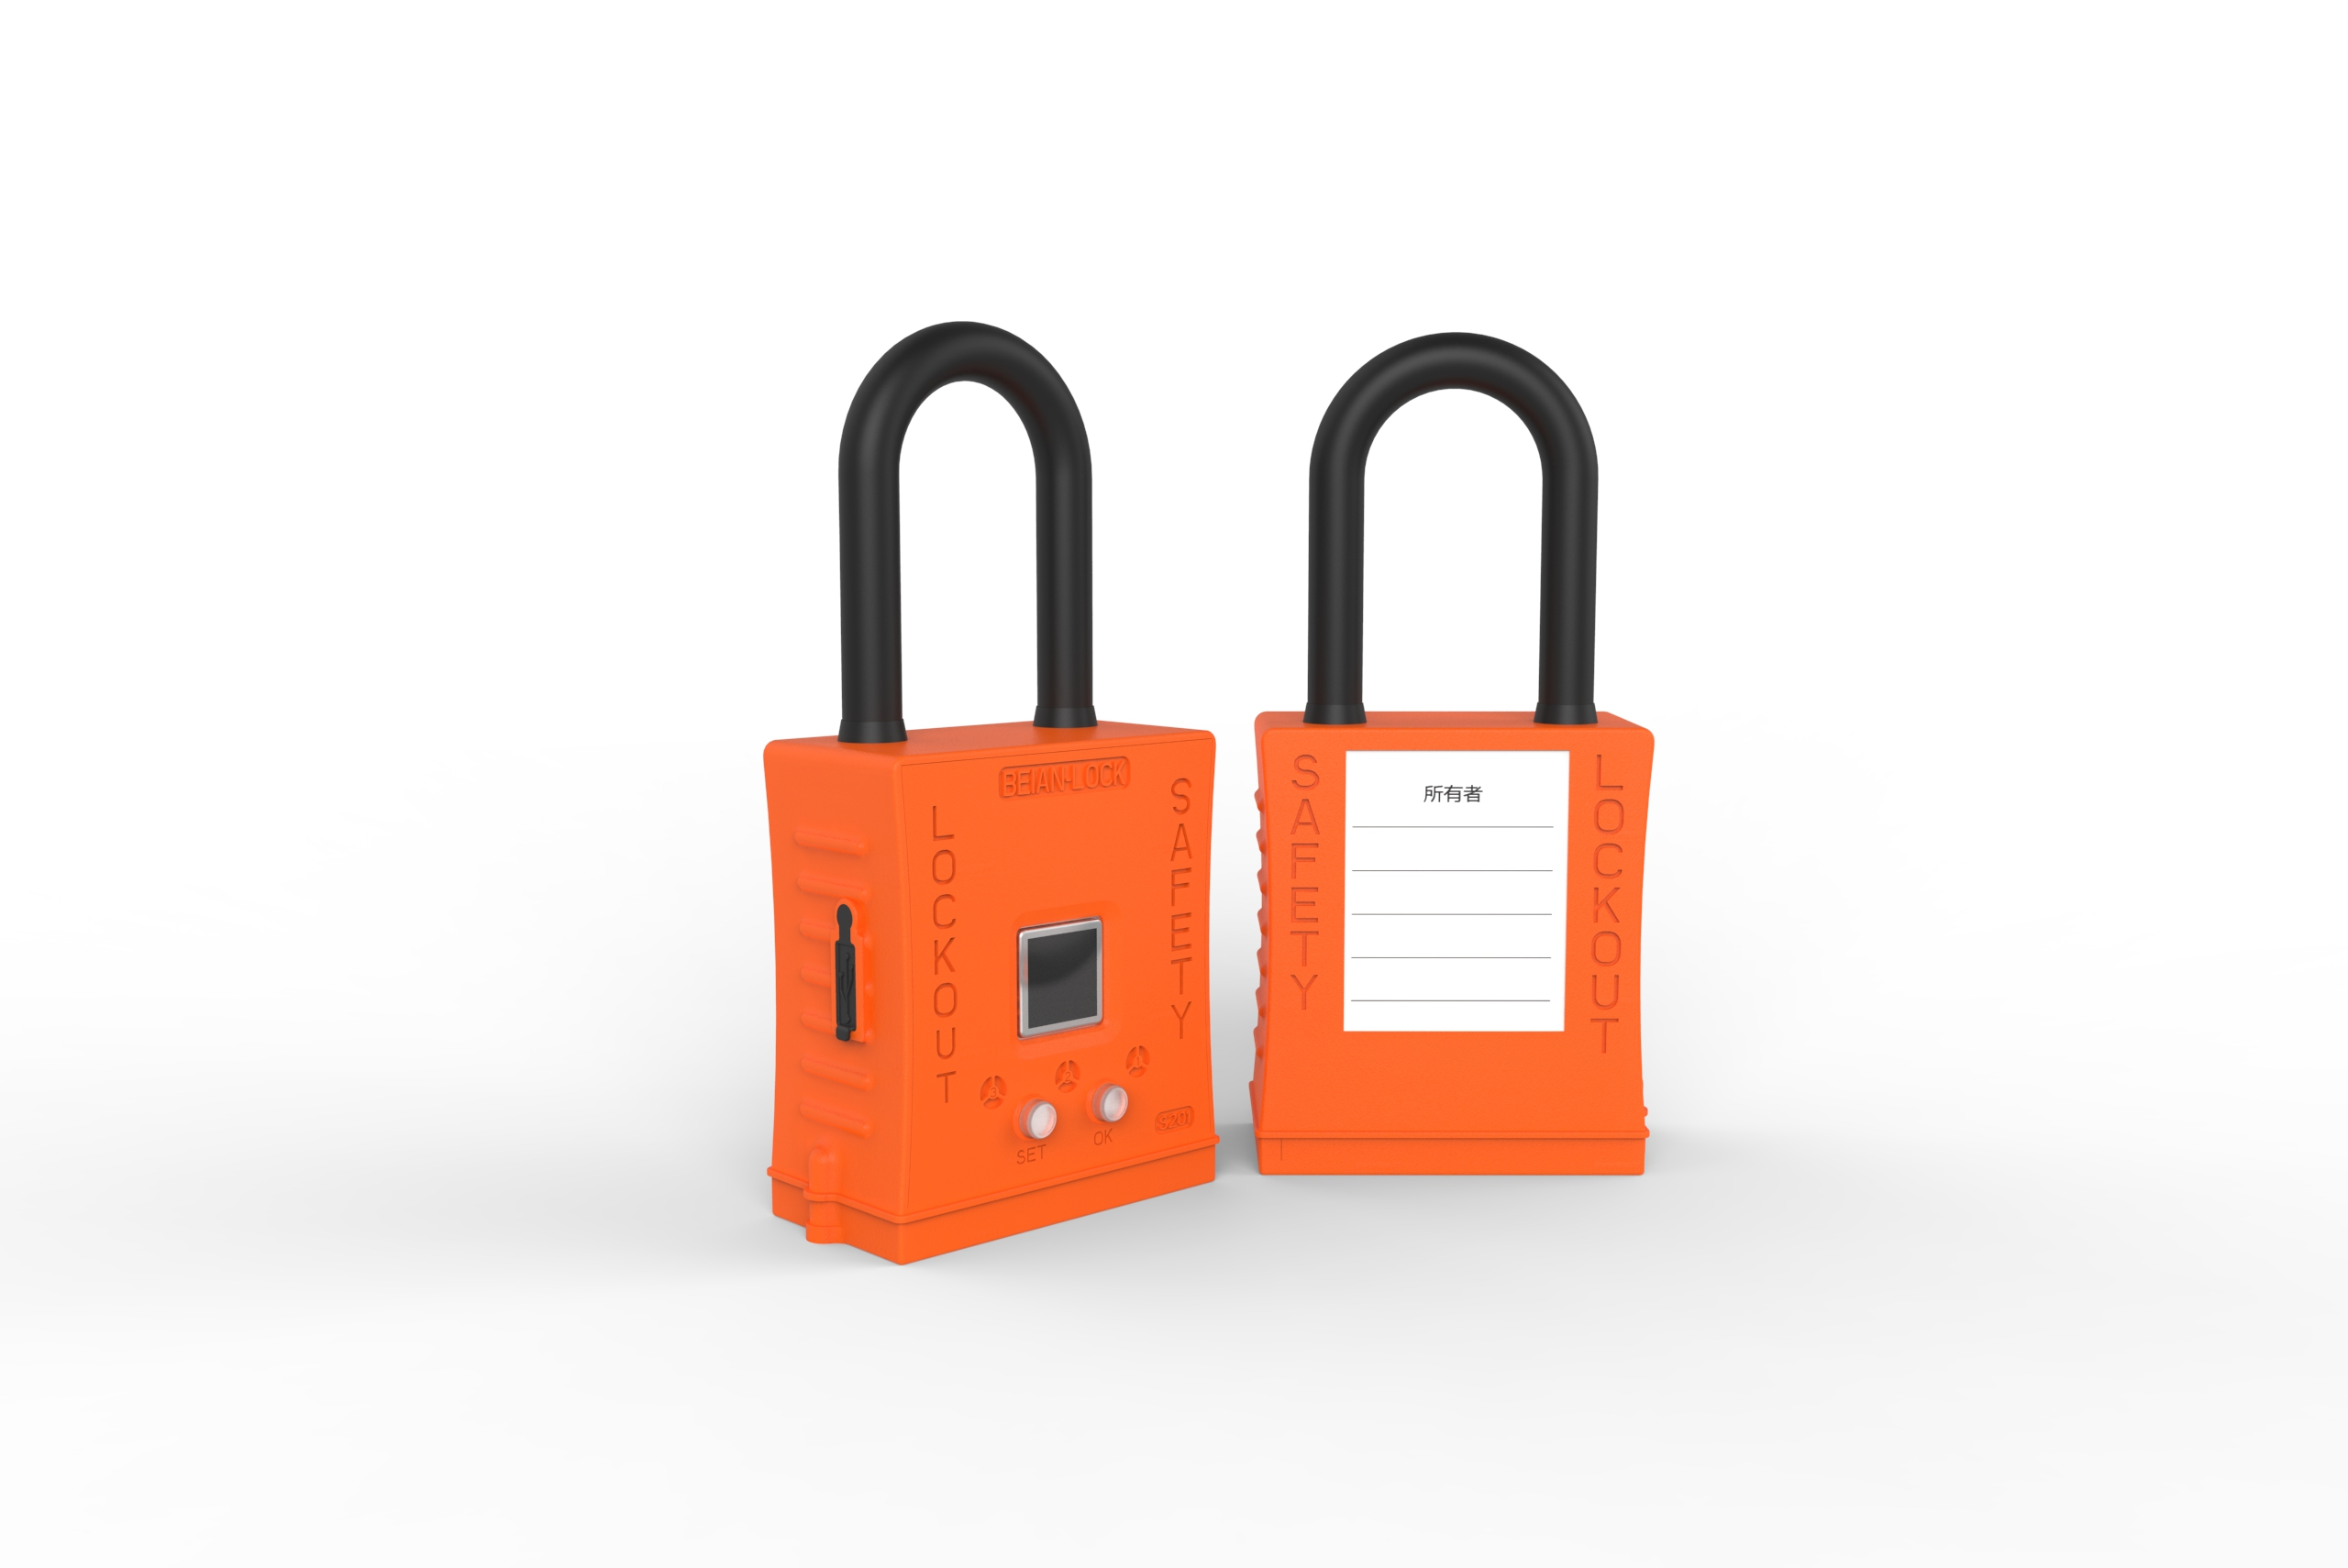 Lockout tagout smart fingerprint biometric padlock osha